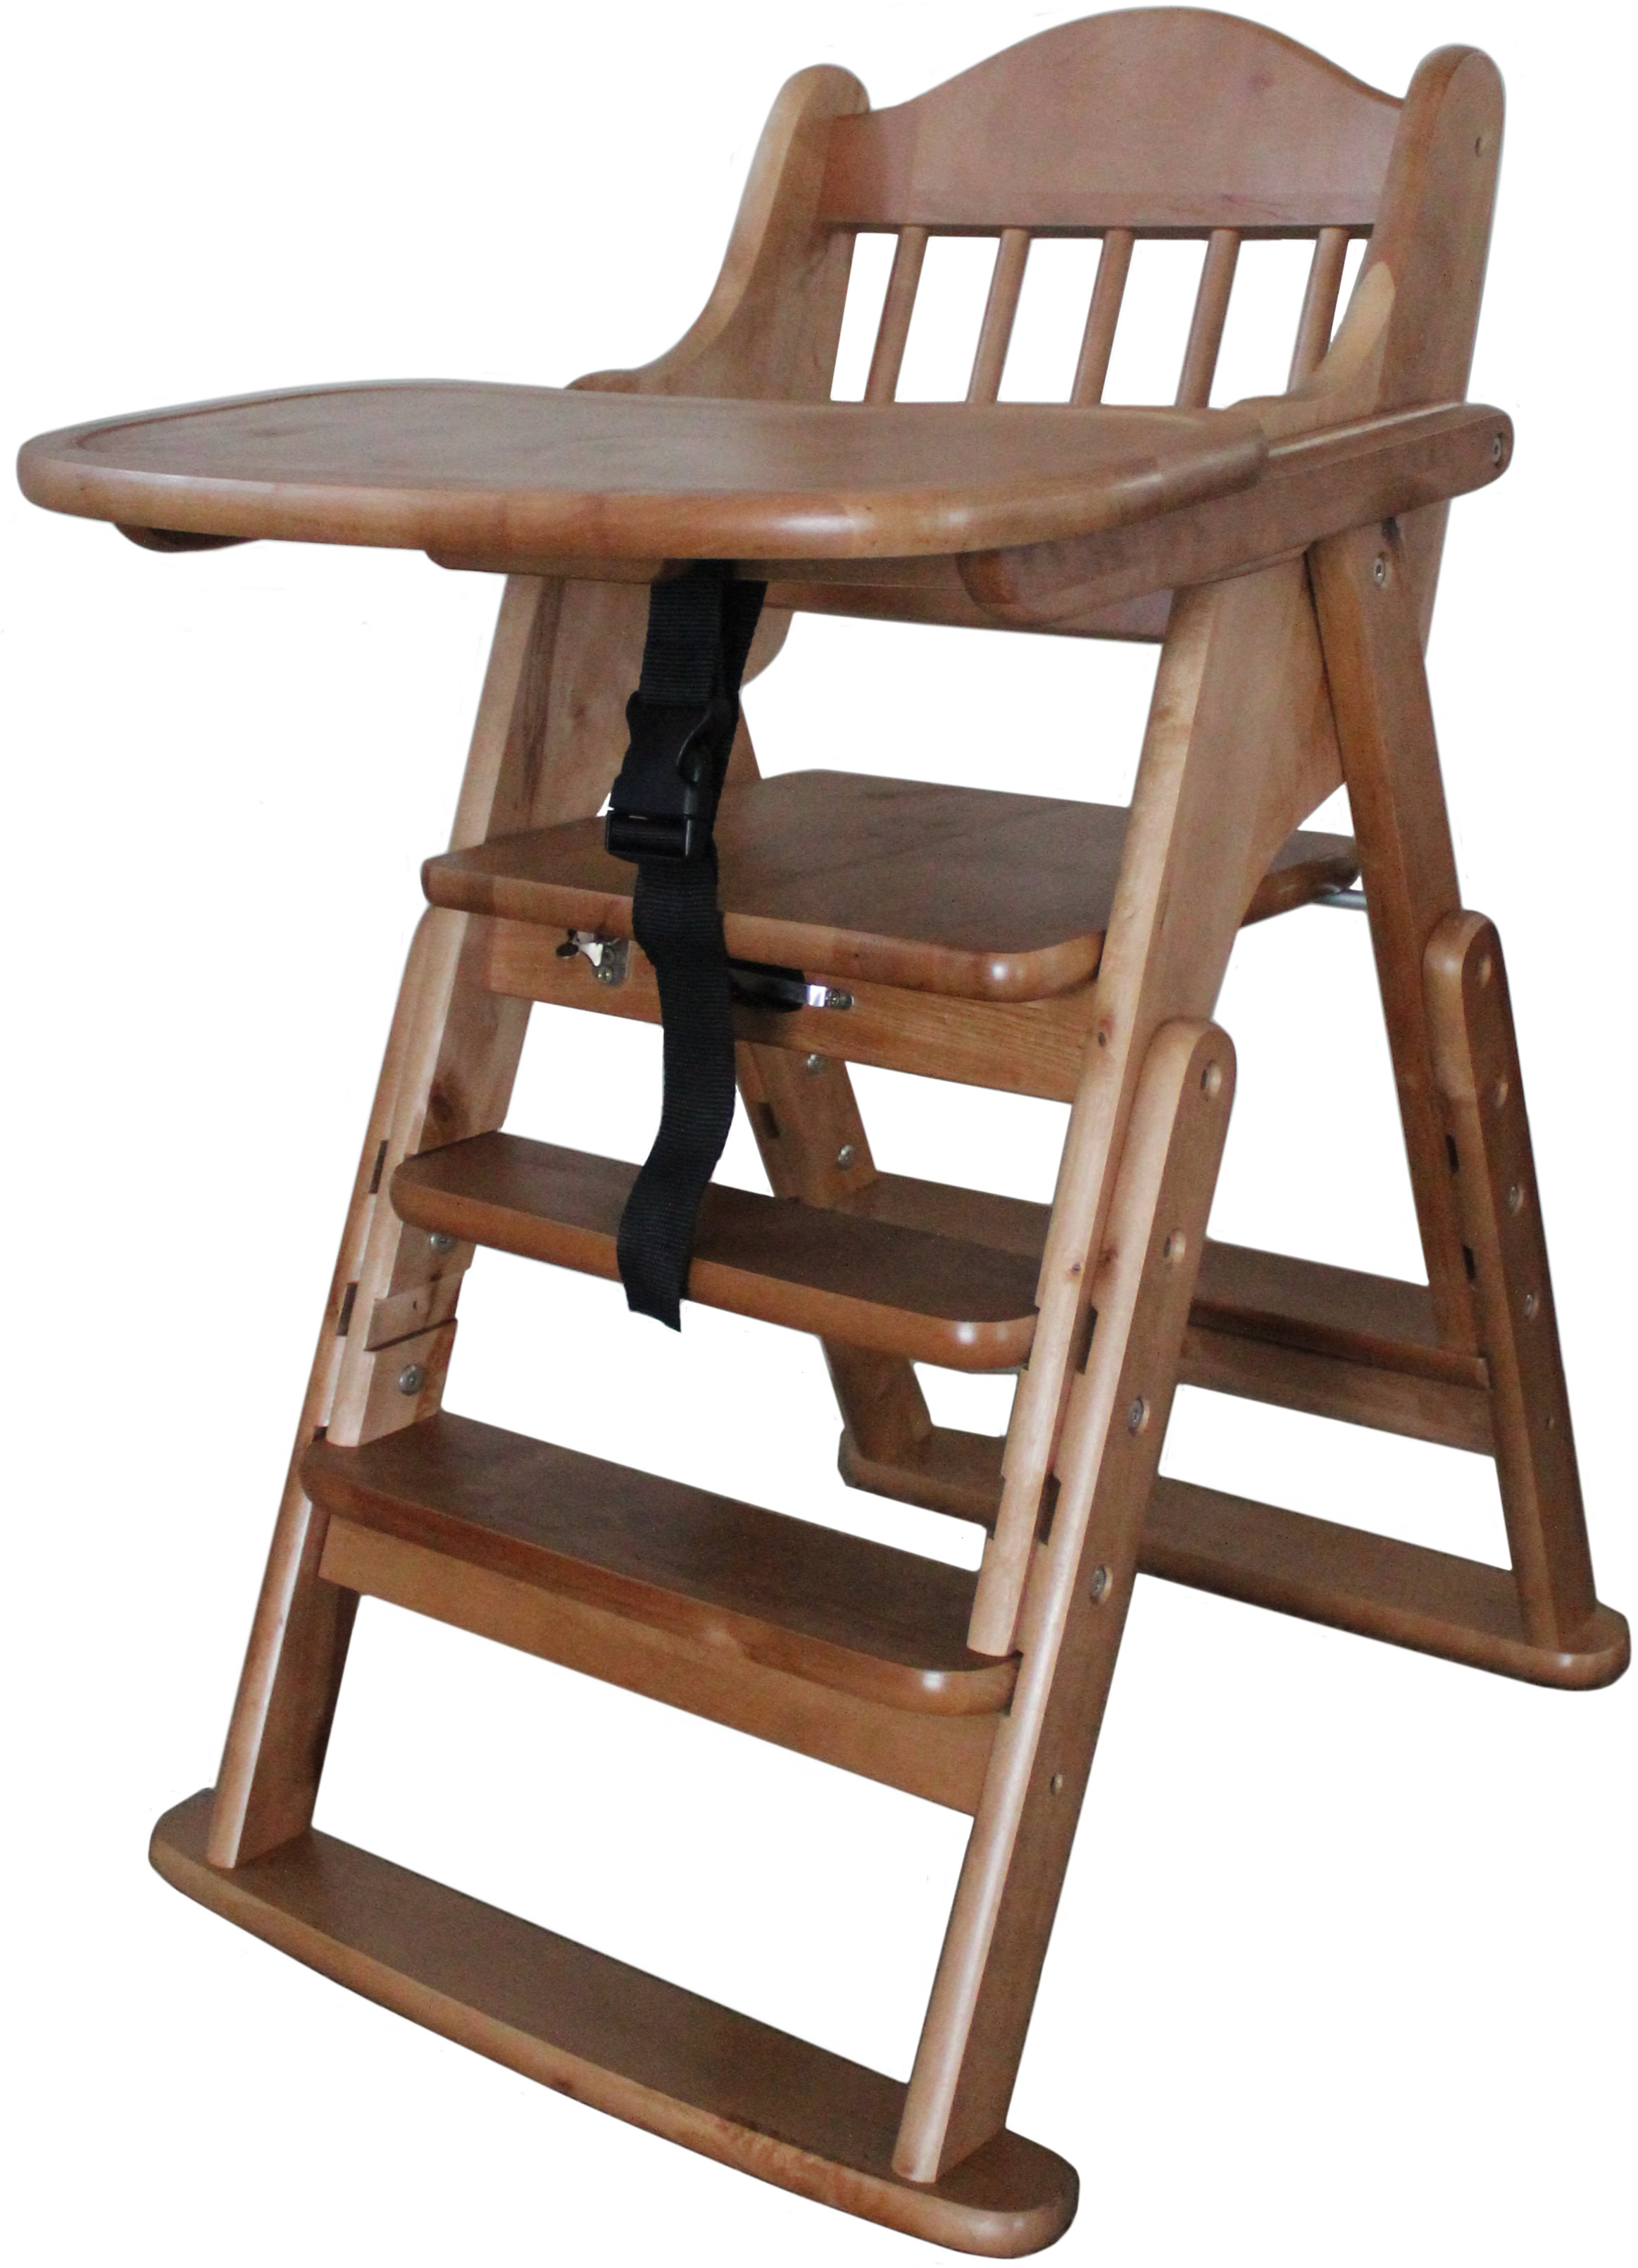 wooden high chair nz shell replica multifunction solid wood front bar food tray